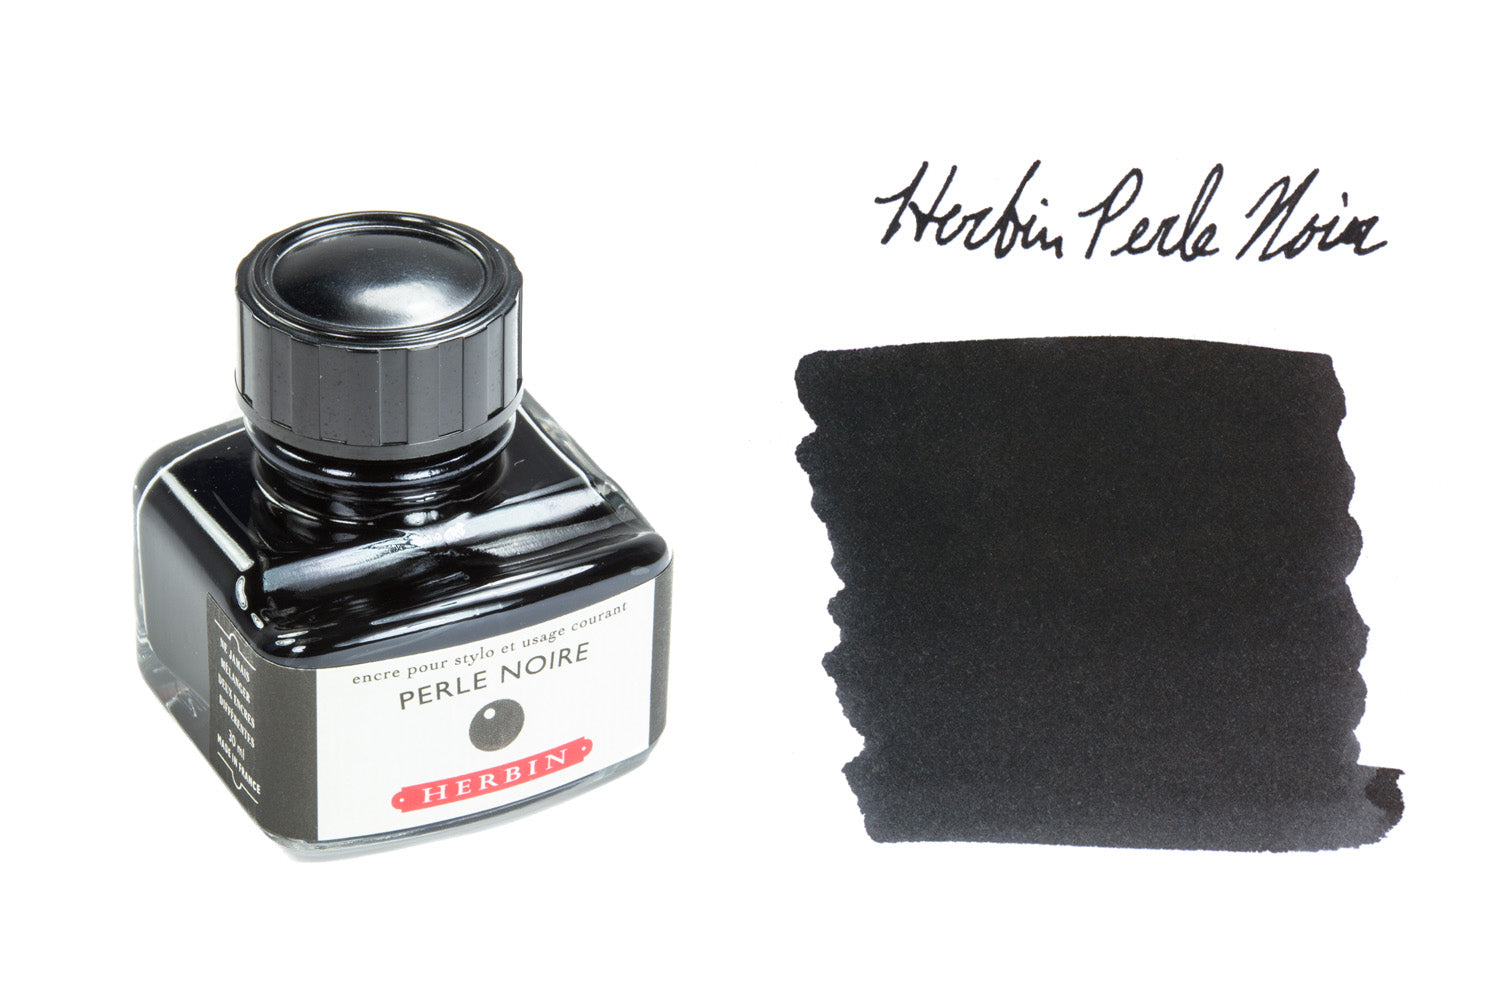 Herbin Perle Noire - 30ml Bottled Ink